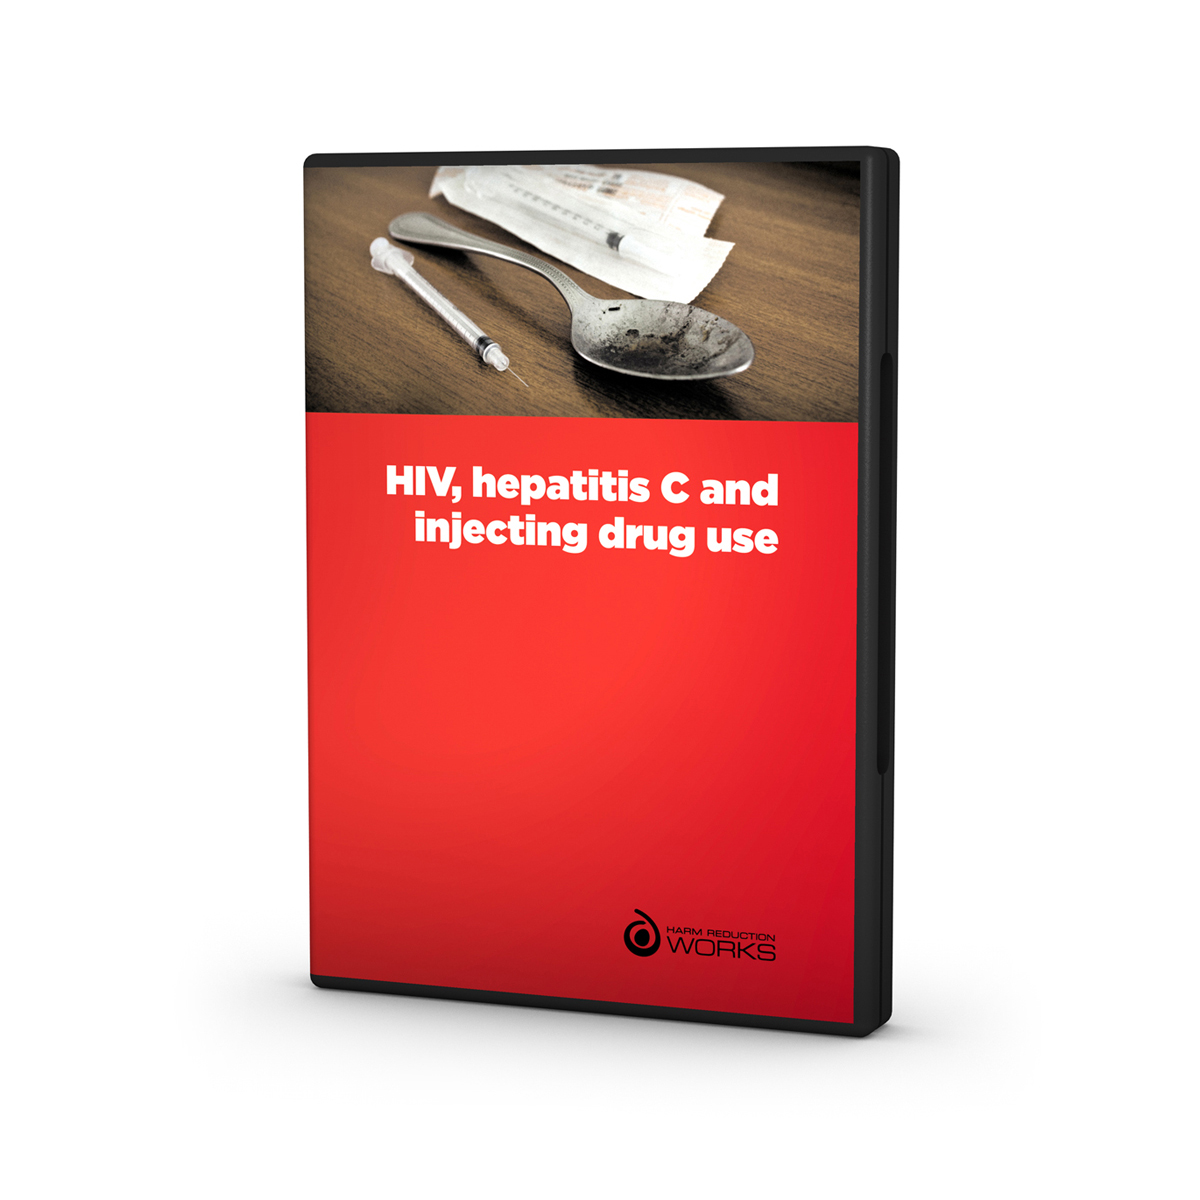 DVD: HIV, hepatitis C and injecting drug use